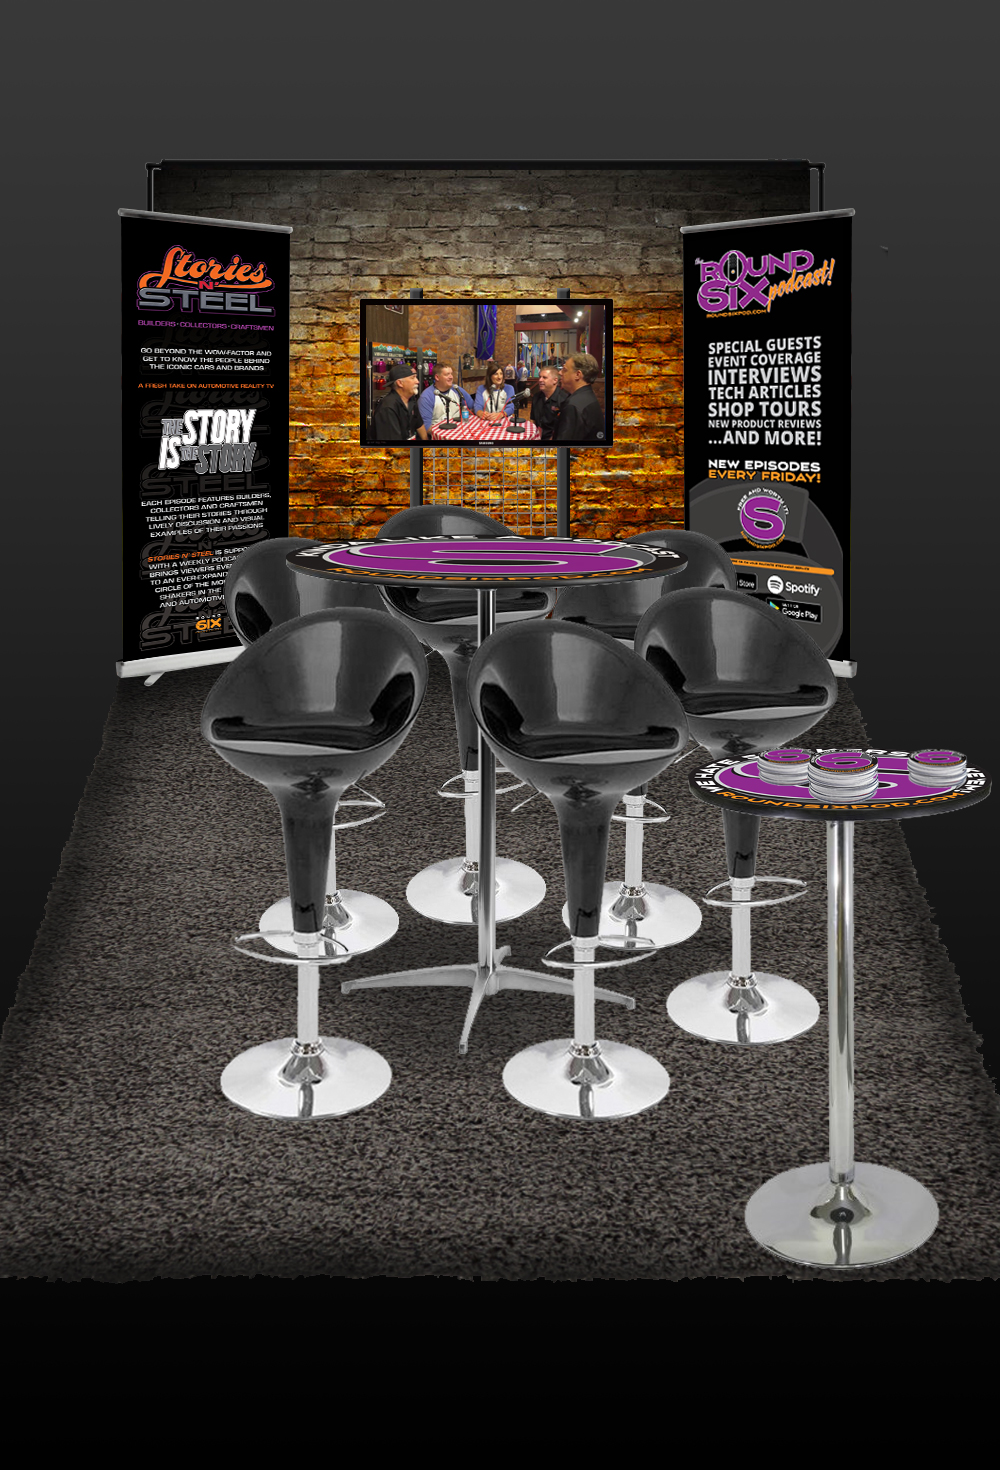 trade show booth design rendering